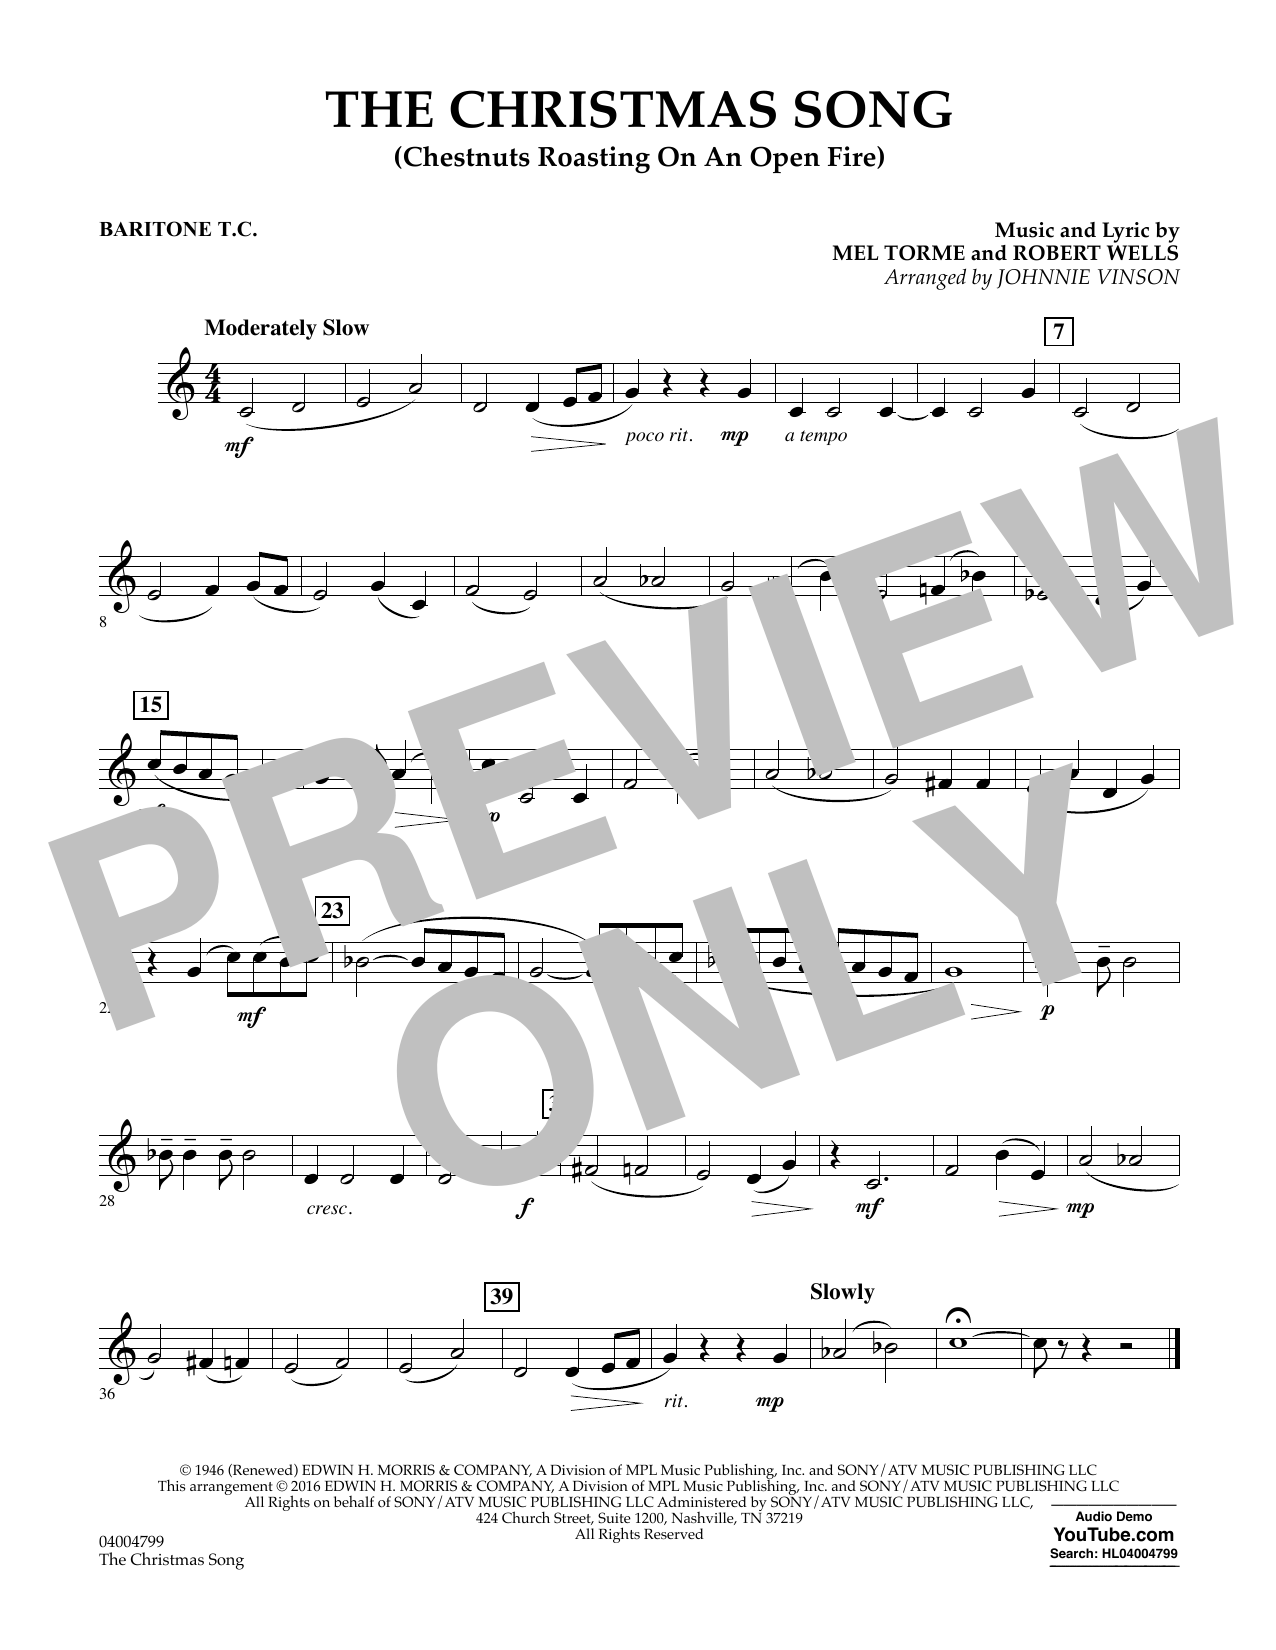 The Christmas Song (Chestnuts Roasting on an Open Fire) - Baritone T.C. (Concert Band)